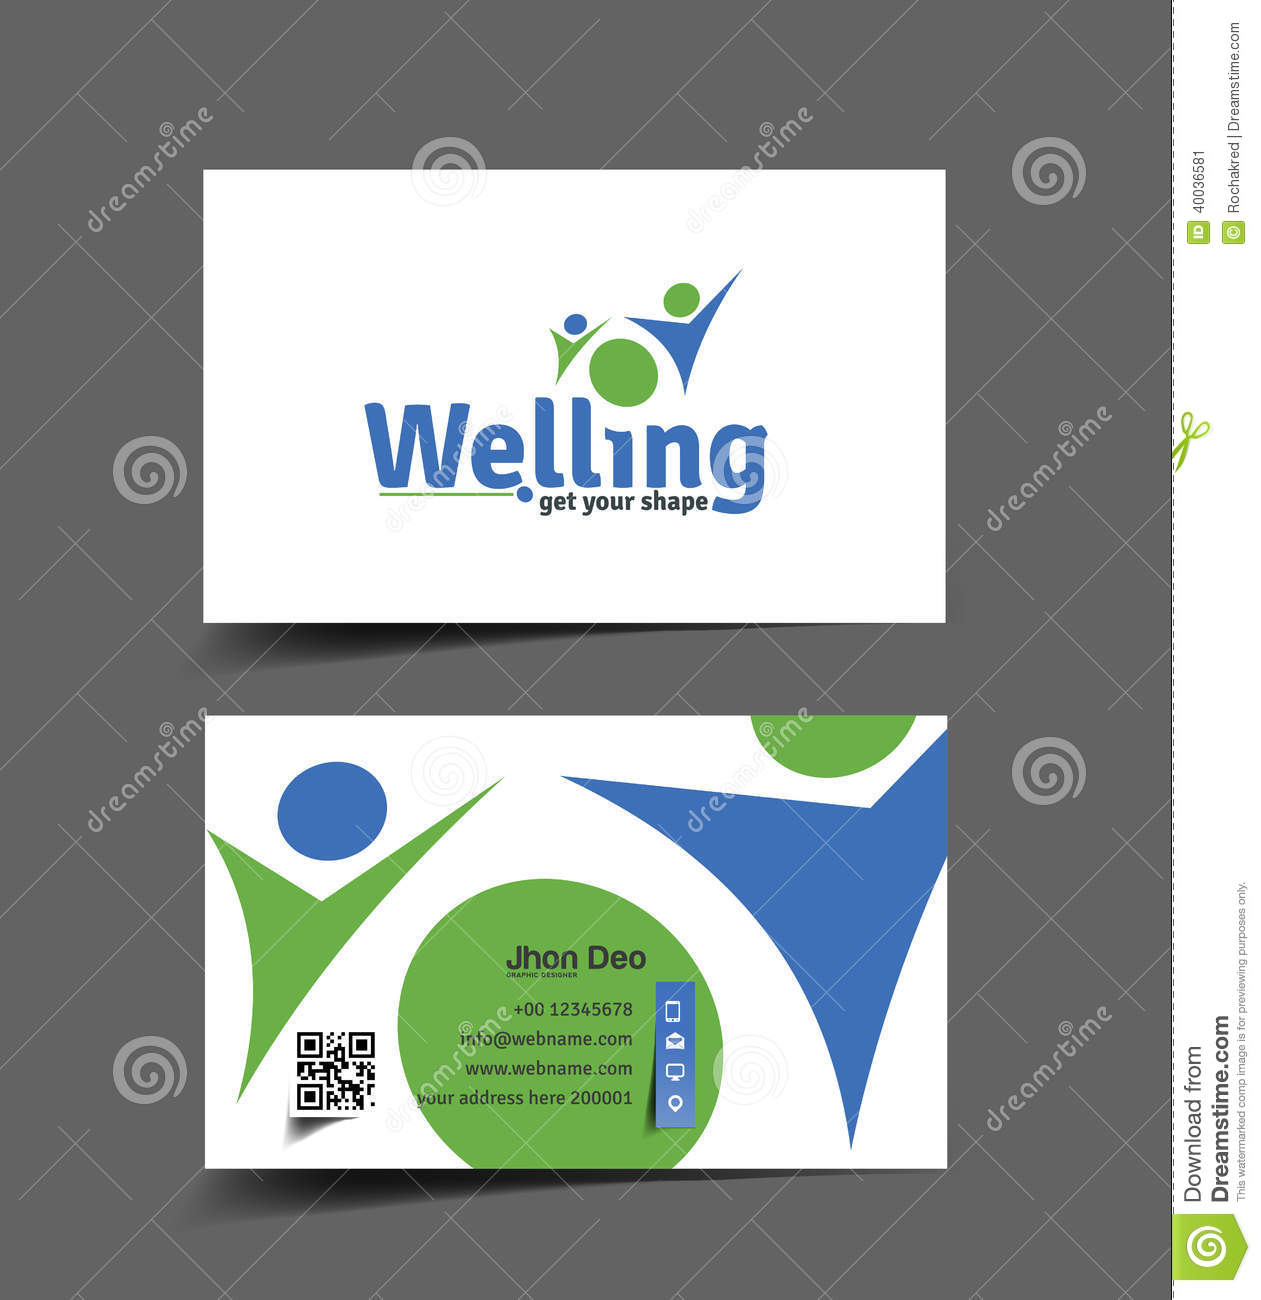 Health Care Business Card stock vector. Illustration of cardboard ...